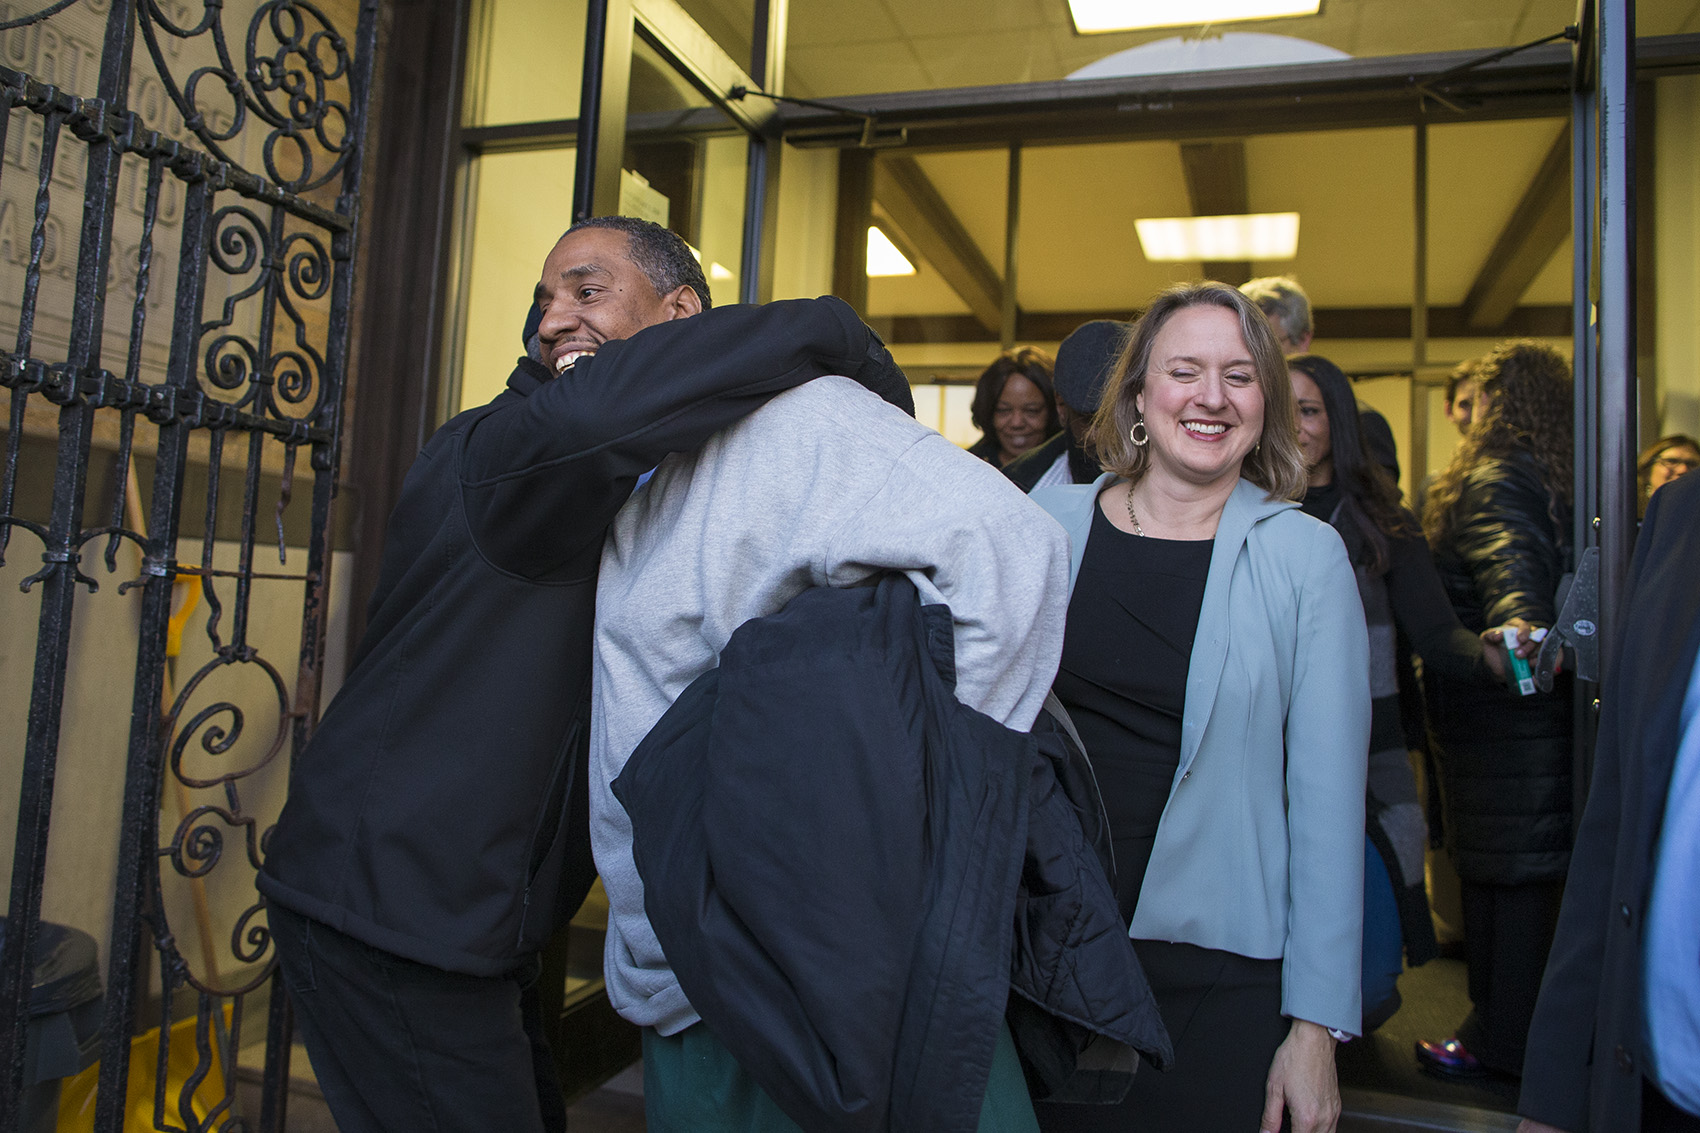 Darrell Jones walks out of the Plymouth County Superior Court in Brockton with his attorney Lisa Kavanaugh after he was released on bail Thursday after being incarcerated for 32 years for a crime he maintains he did not commit. (Jesse Costa/WBUR)